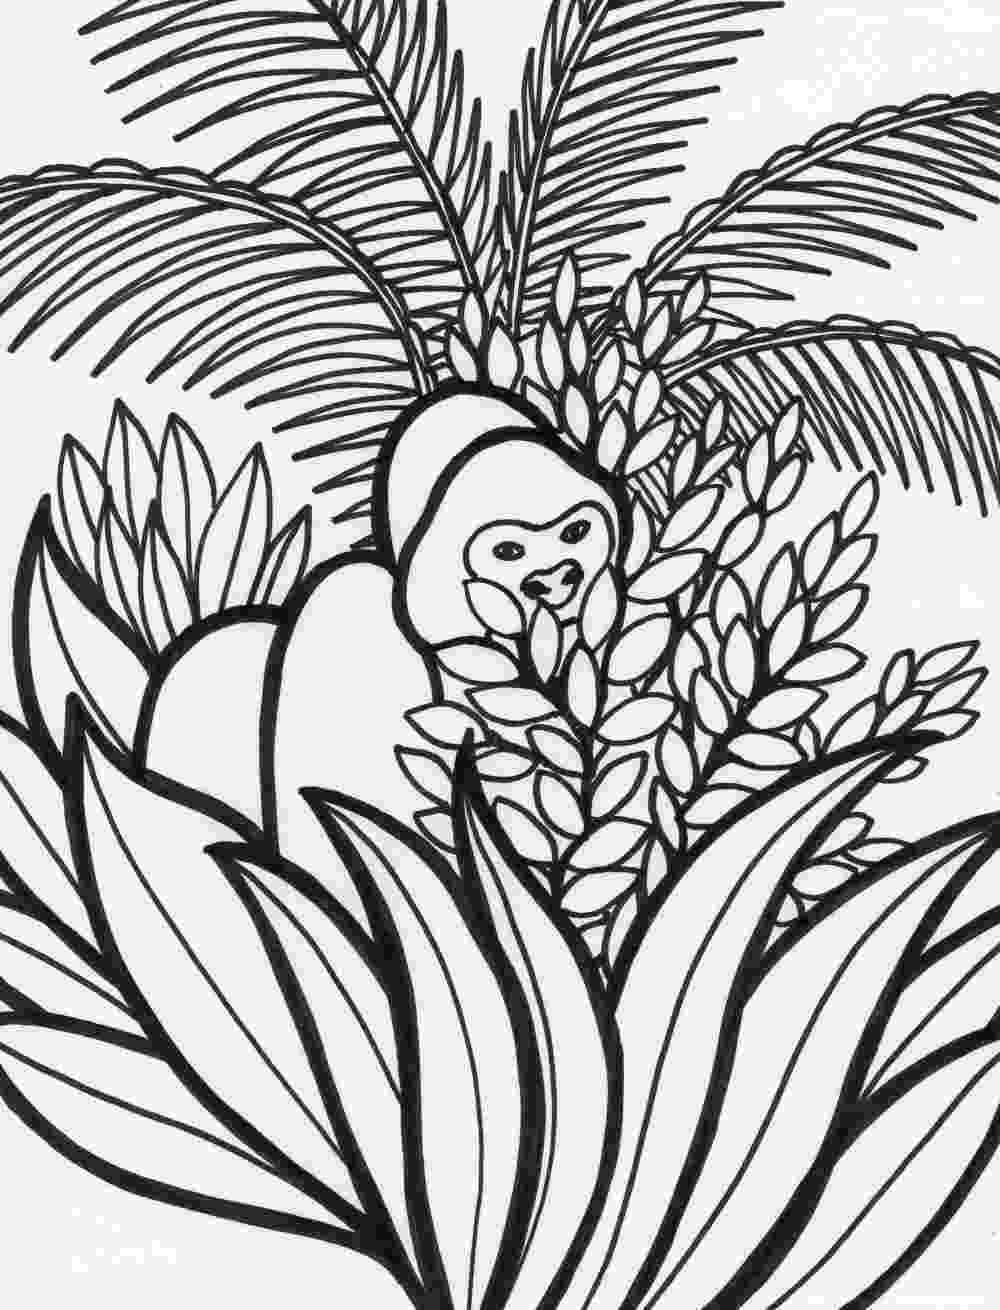 rainforest animals coloring book rain forest coloring pages k 3 coloring sevierville tennessee book coloring rainforest animals